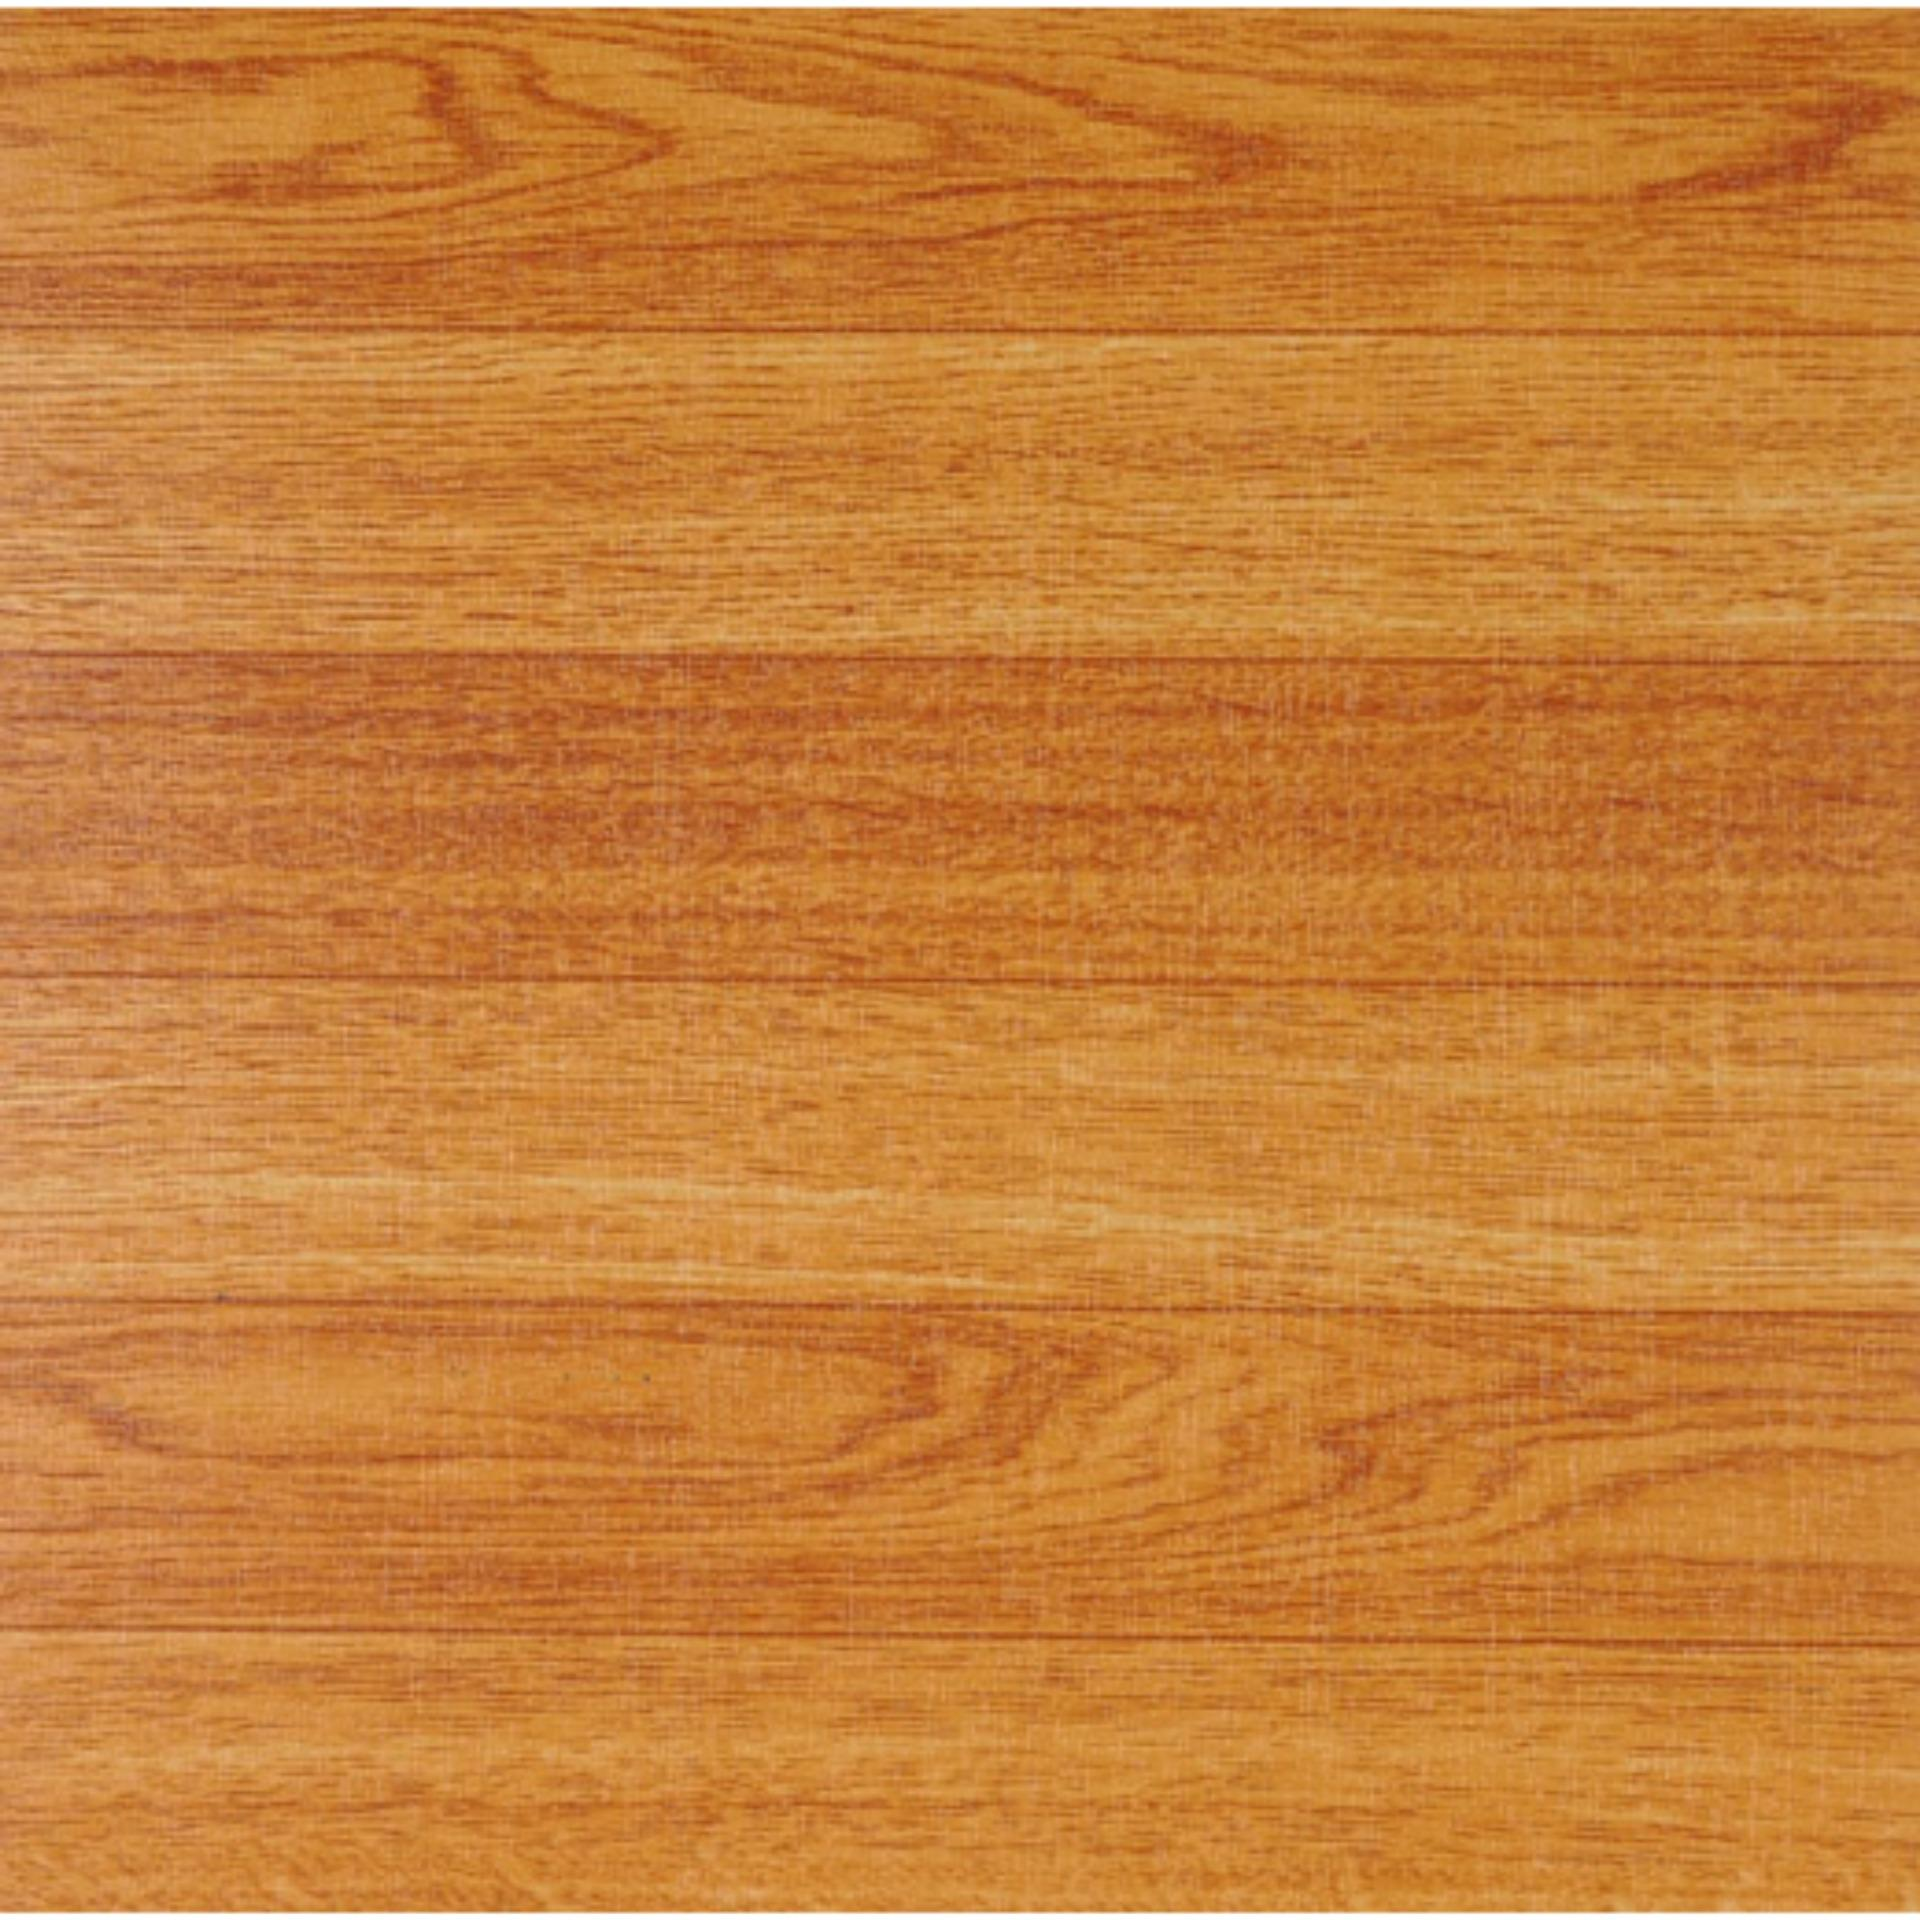 Kent Vinyl Flooring 12x12 Inches 283